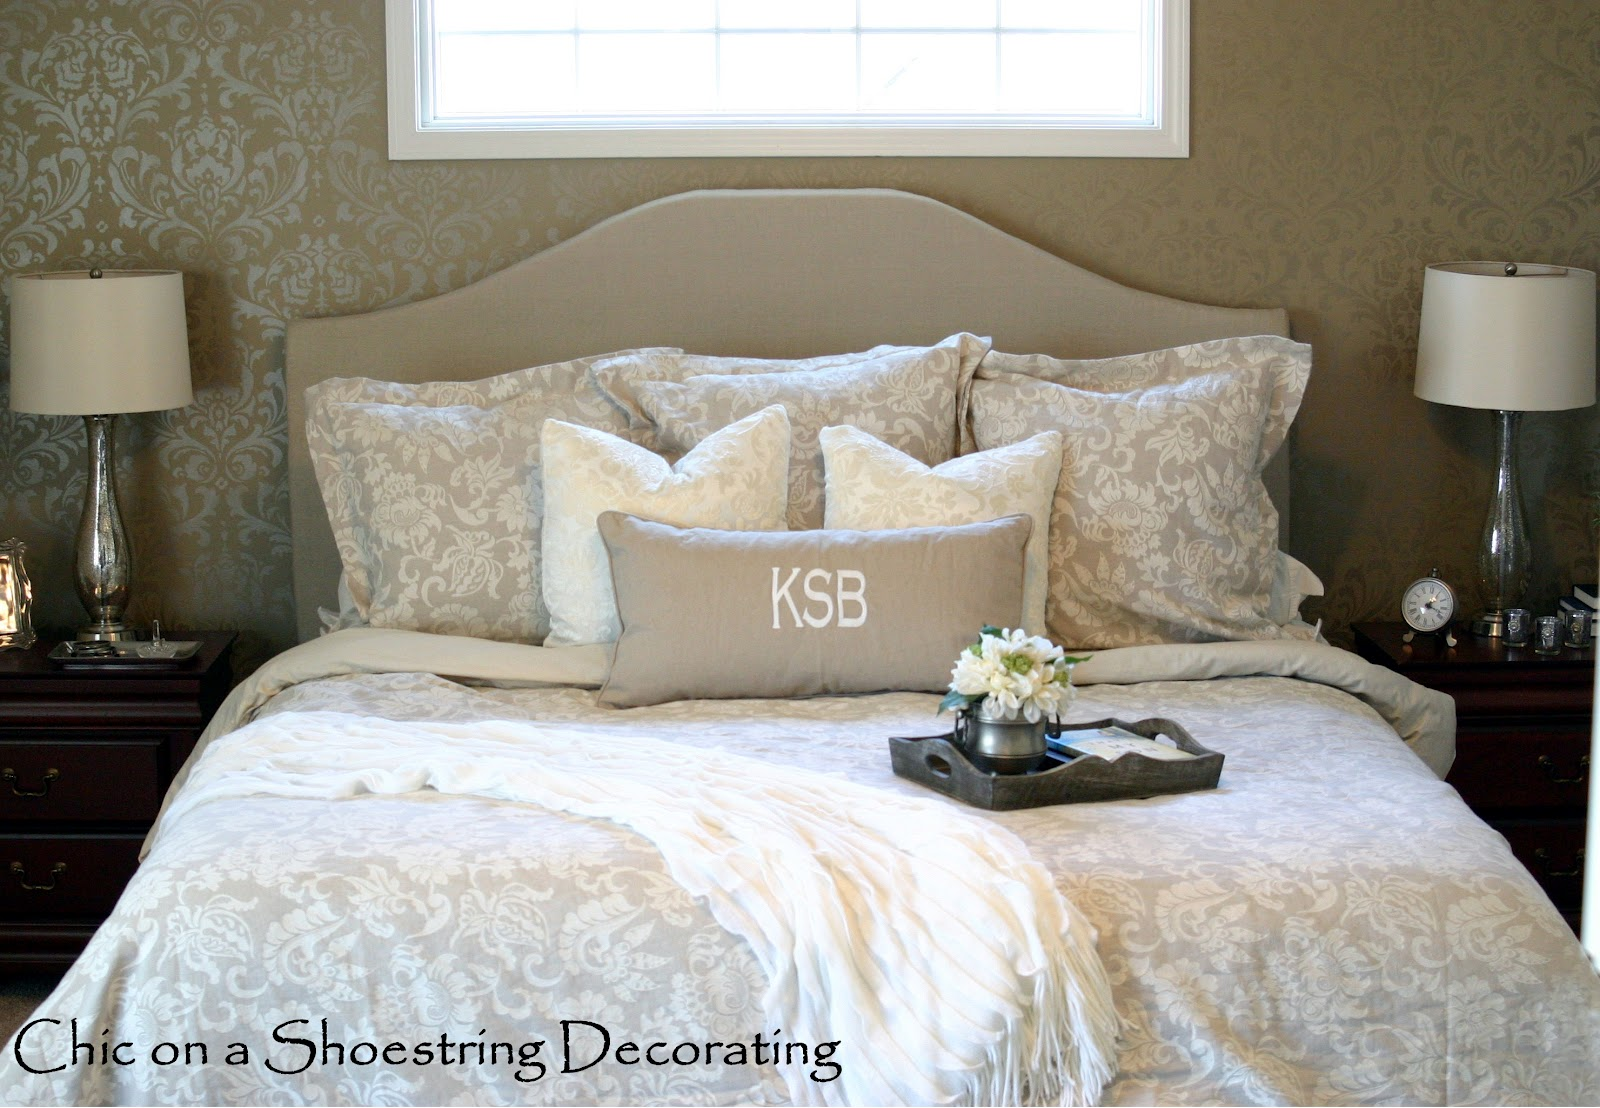 Diy Upholstered Headboard Linen Bedding At Chic On A Shoestring Decorating Blog